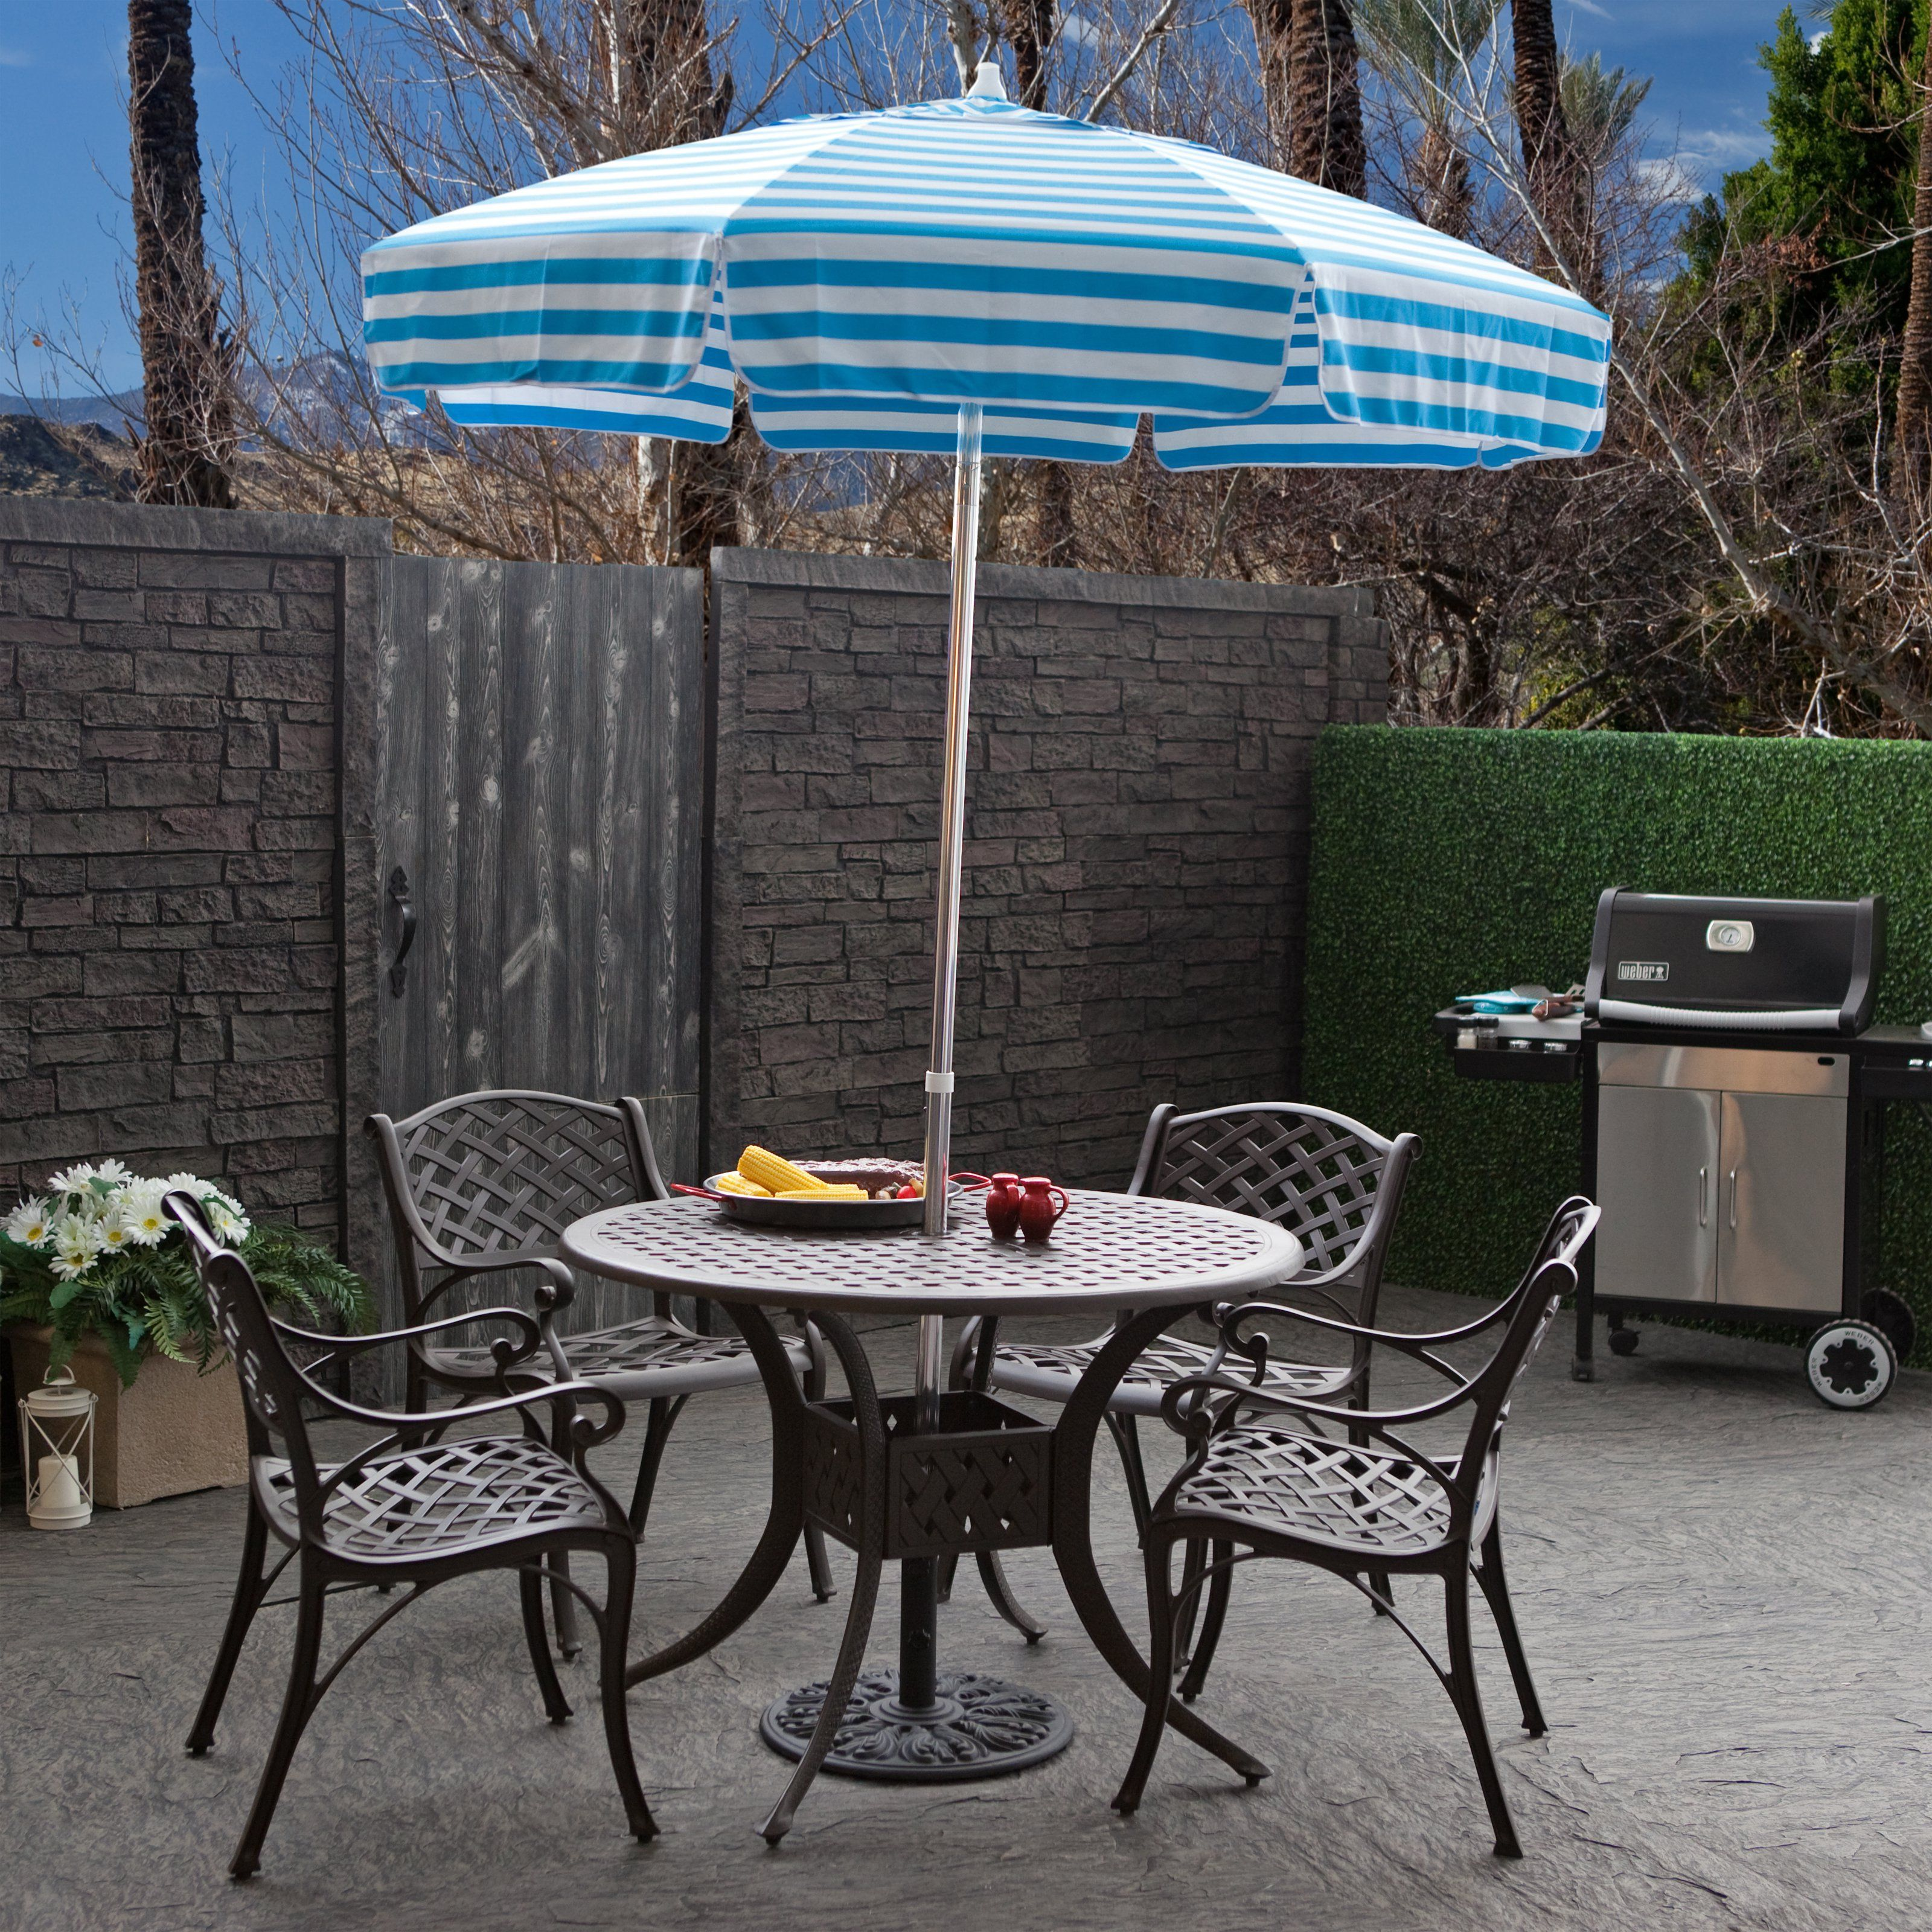 Destinationgear 6 Ft Aluminum Cabana Stripe Bistro Umbrella Patio Table Umbrella Patio Umbrellas Small Patio Furniture